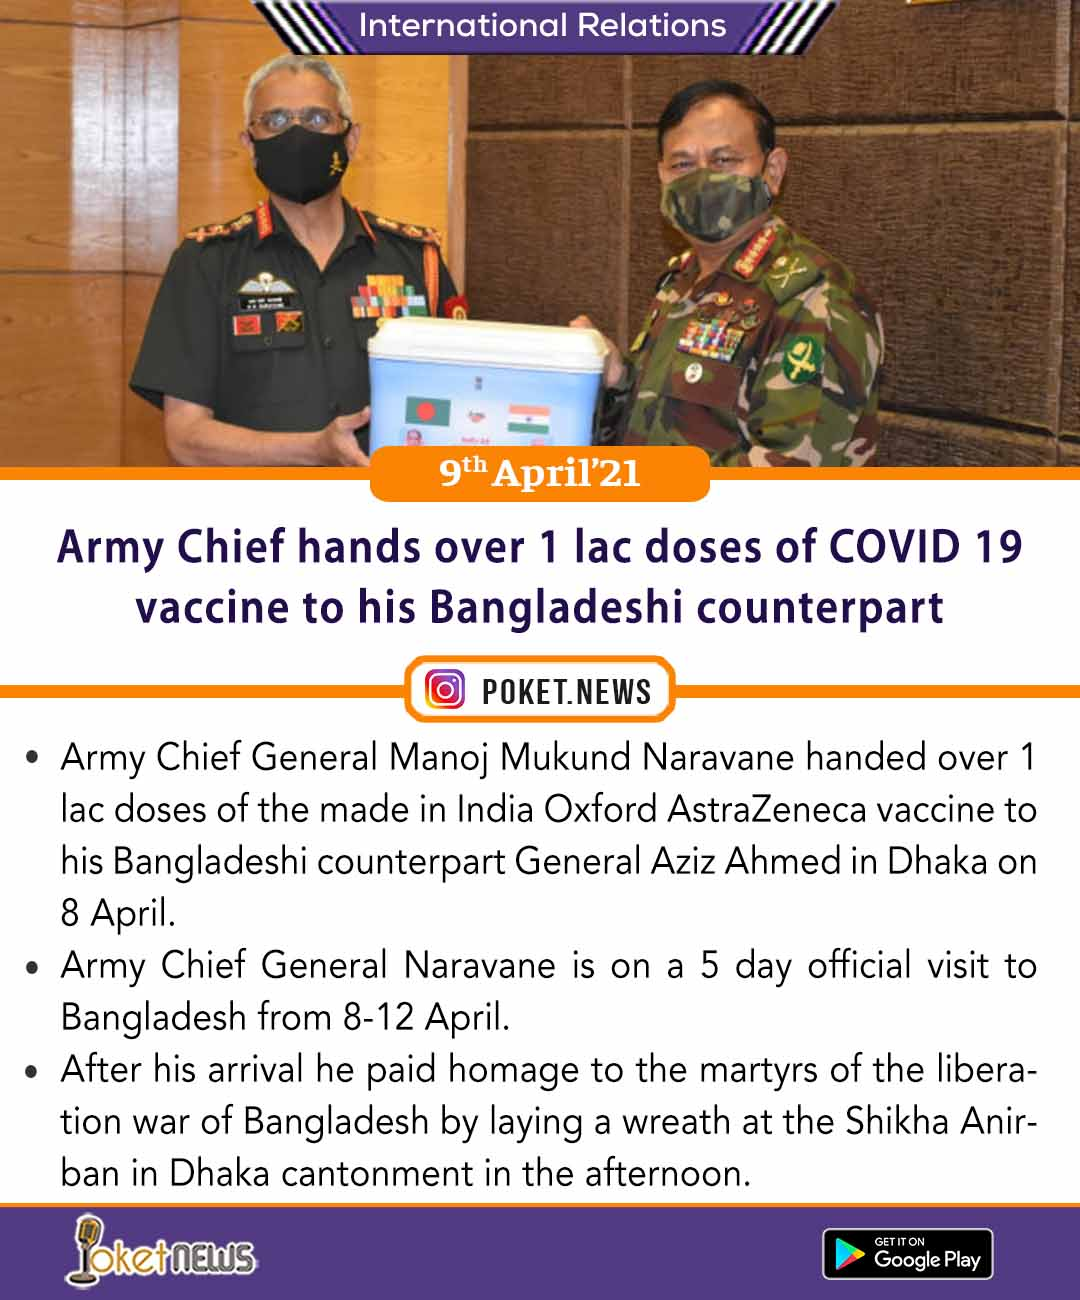 Army Chief hands over 1 lac doses of COVID 19 vaccine to his Bangladeshi counterpart